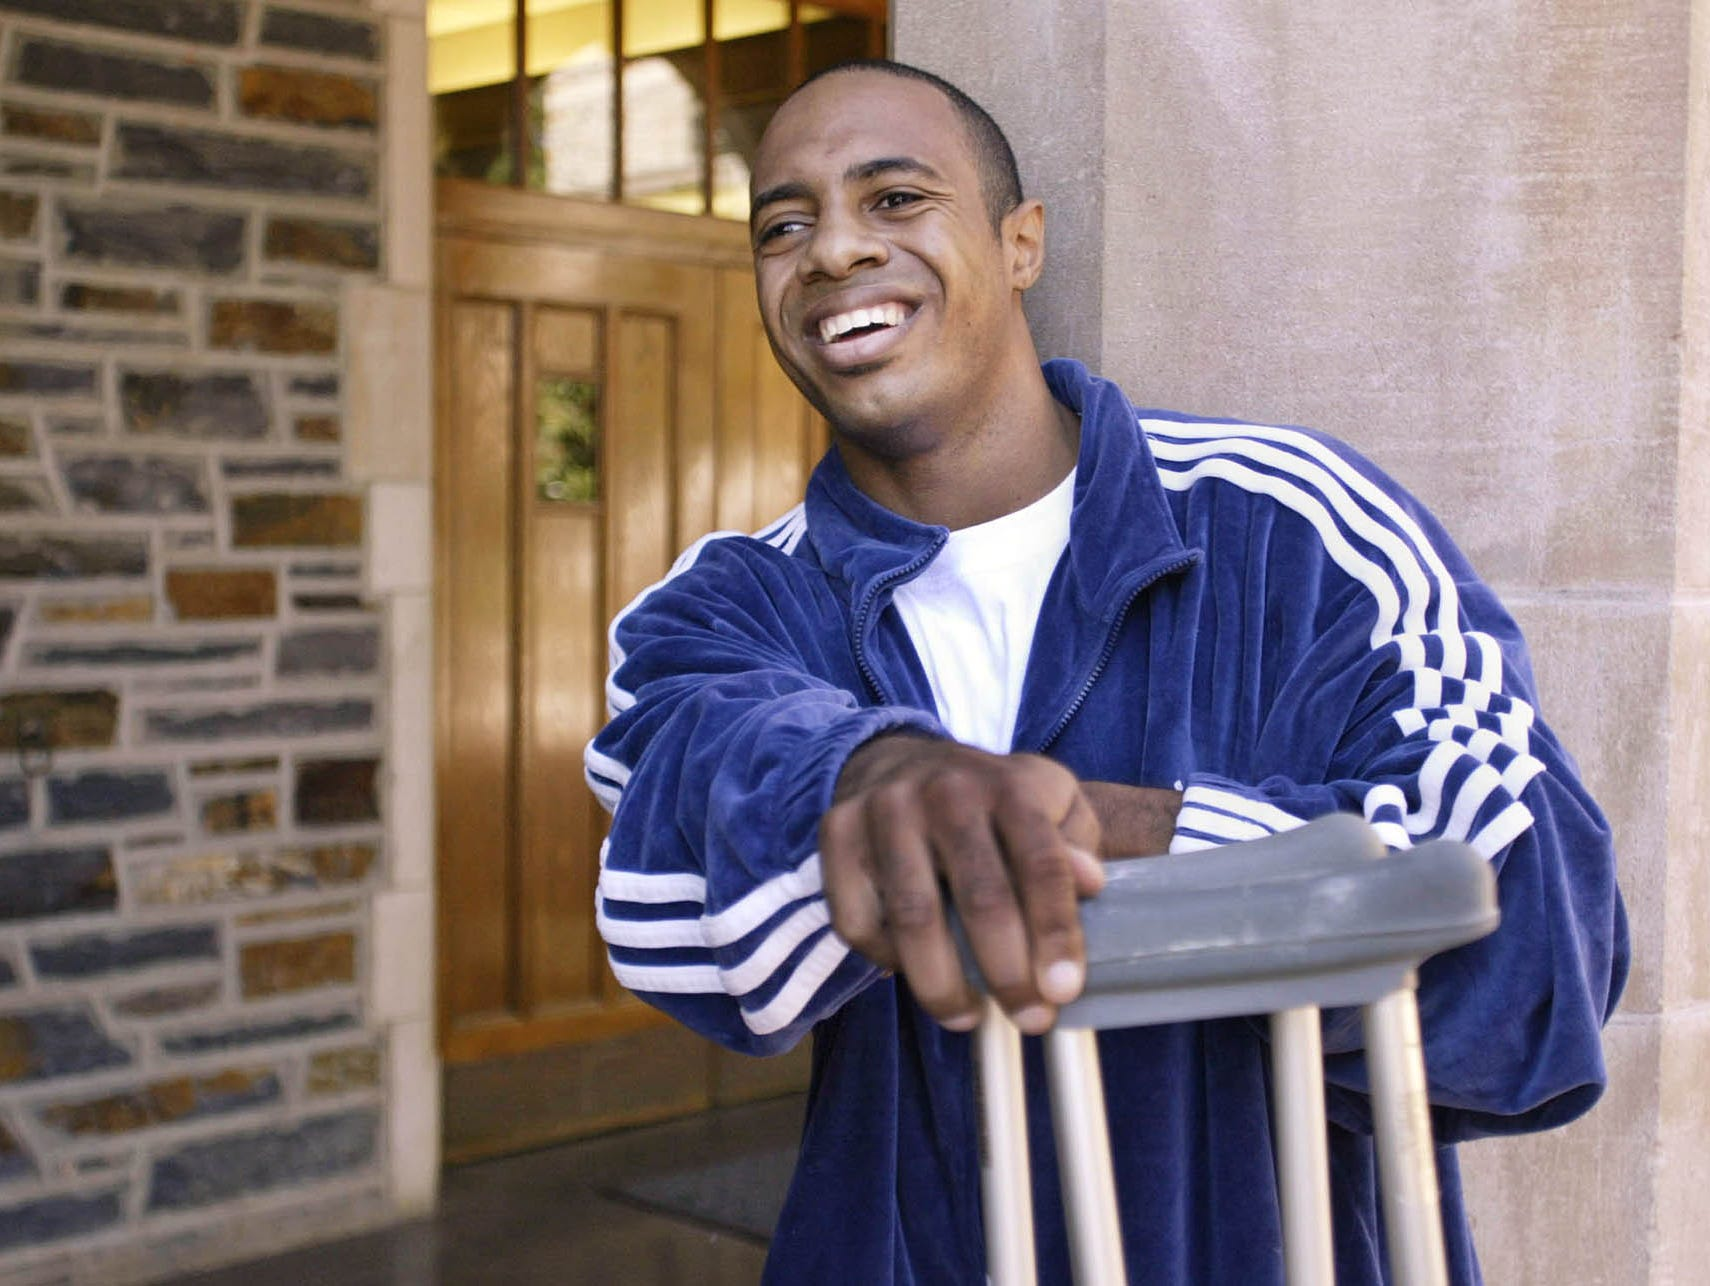 Jay Williams, Chicago Bulls basketball player and former Duke All-American, poses outside Duke's Cameron Indoor Stadium, Monday, Sept. 29, 2003, in Durham, N.C., before an interview. Williams was hurt earlier this year in a motorcycle accident.